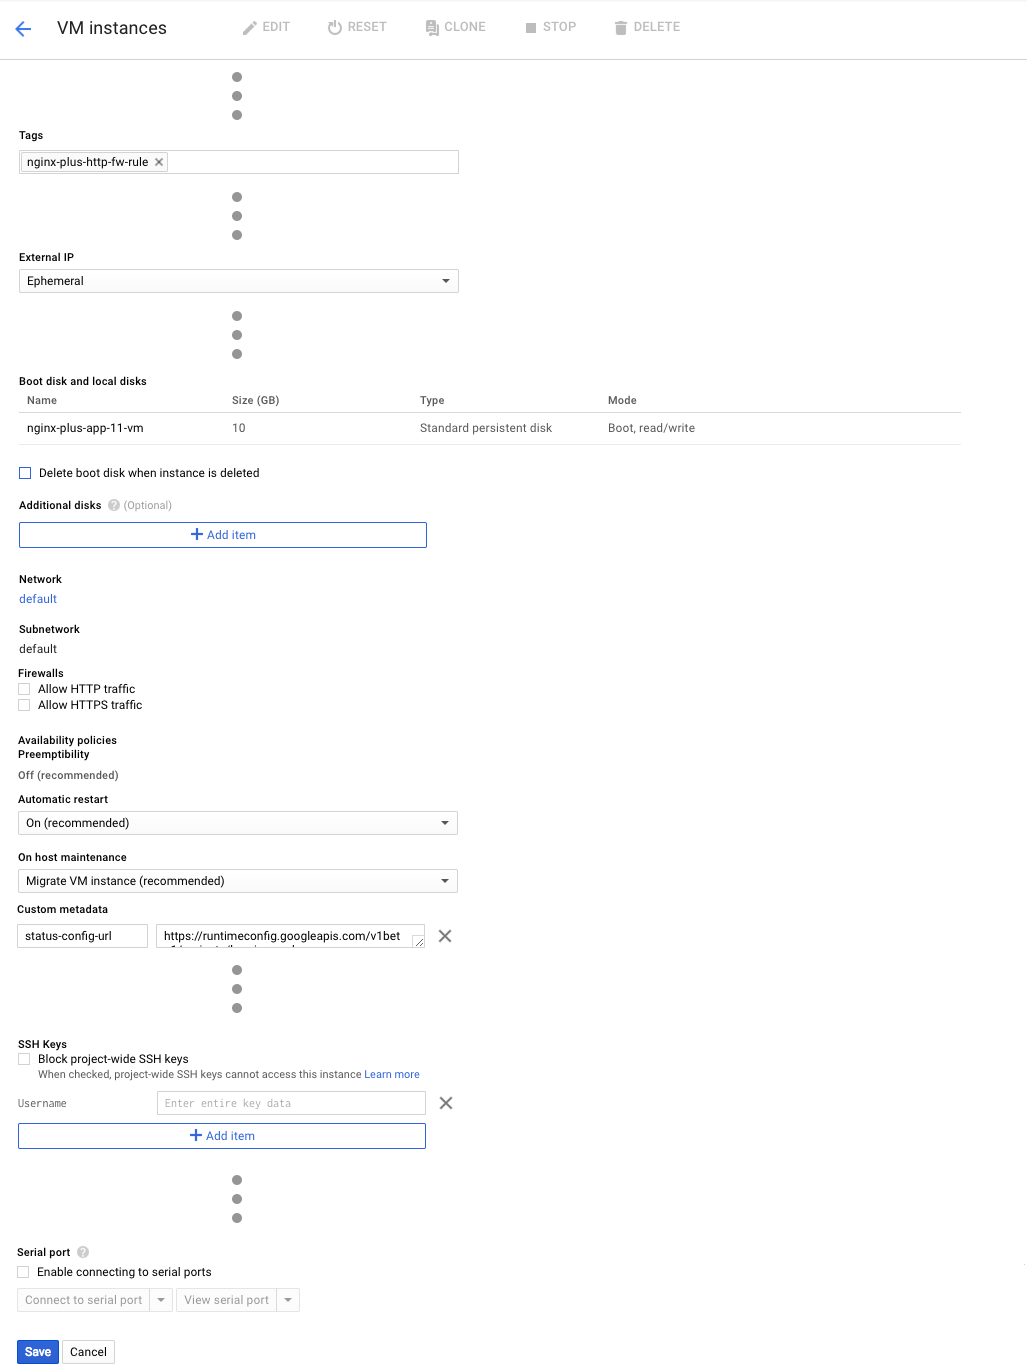 Screenshot showing the configuration modifications for a VM instance being deployed as part of setting up NGINX Plus as the Google load balancer.